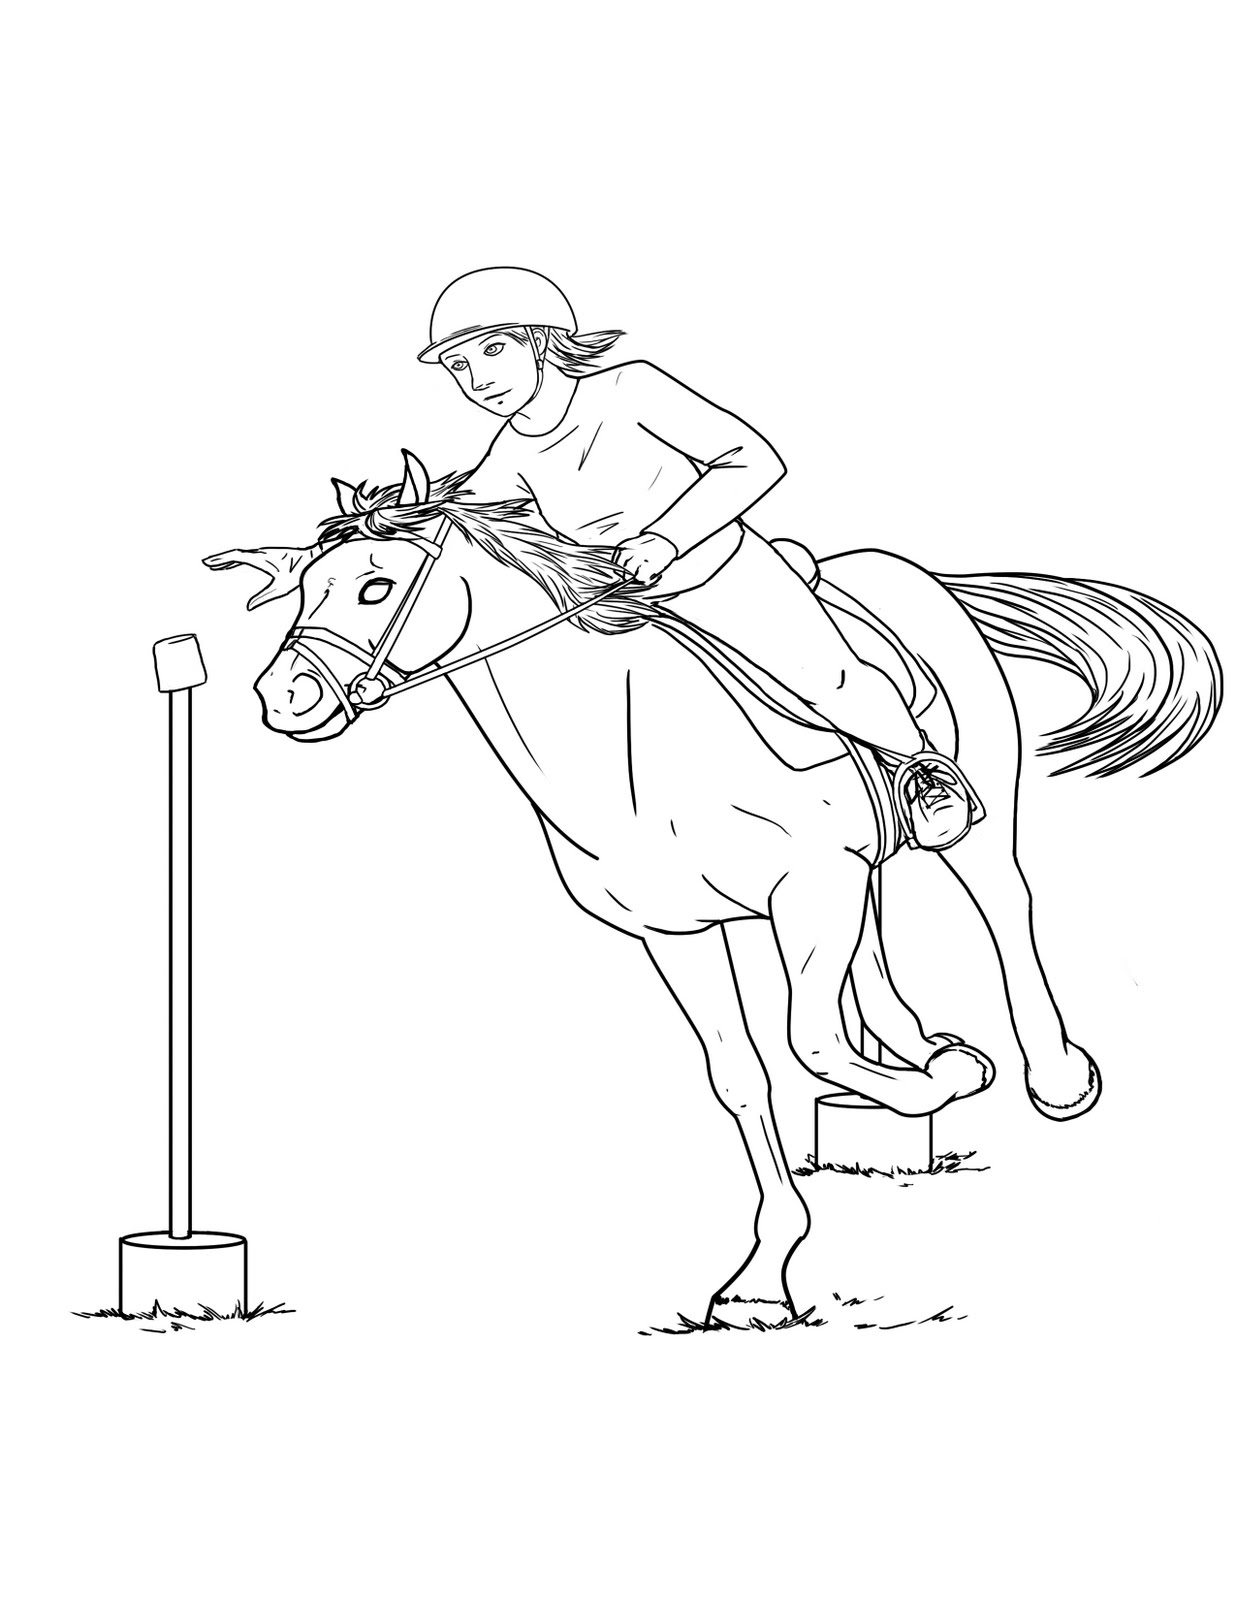 cutant coloring pages - photo#32